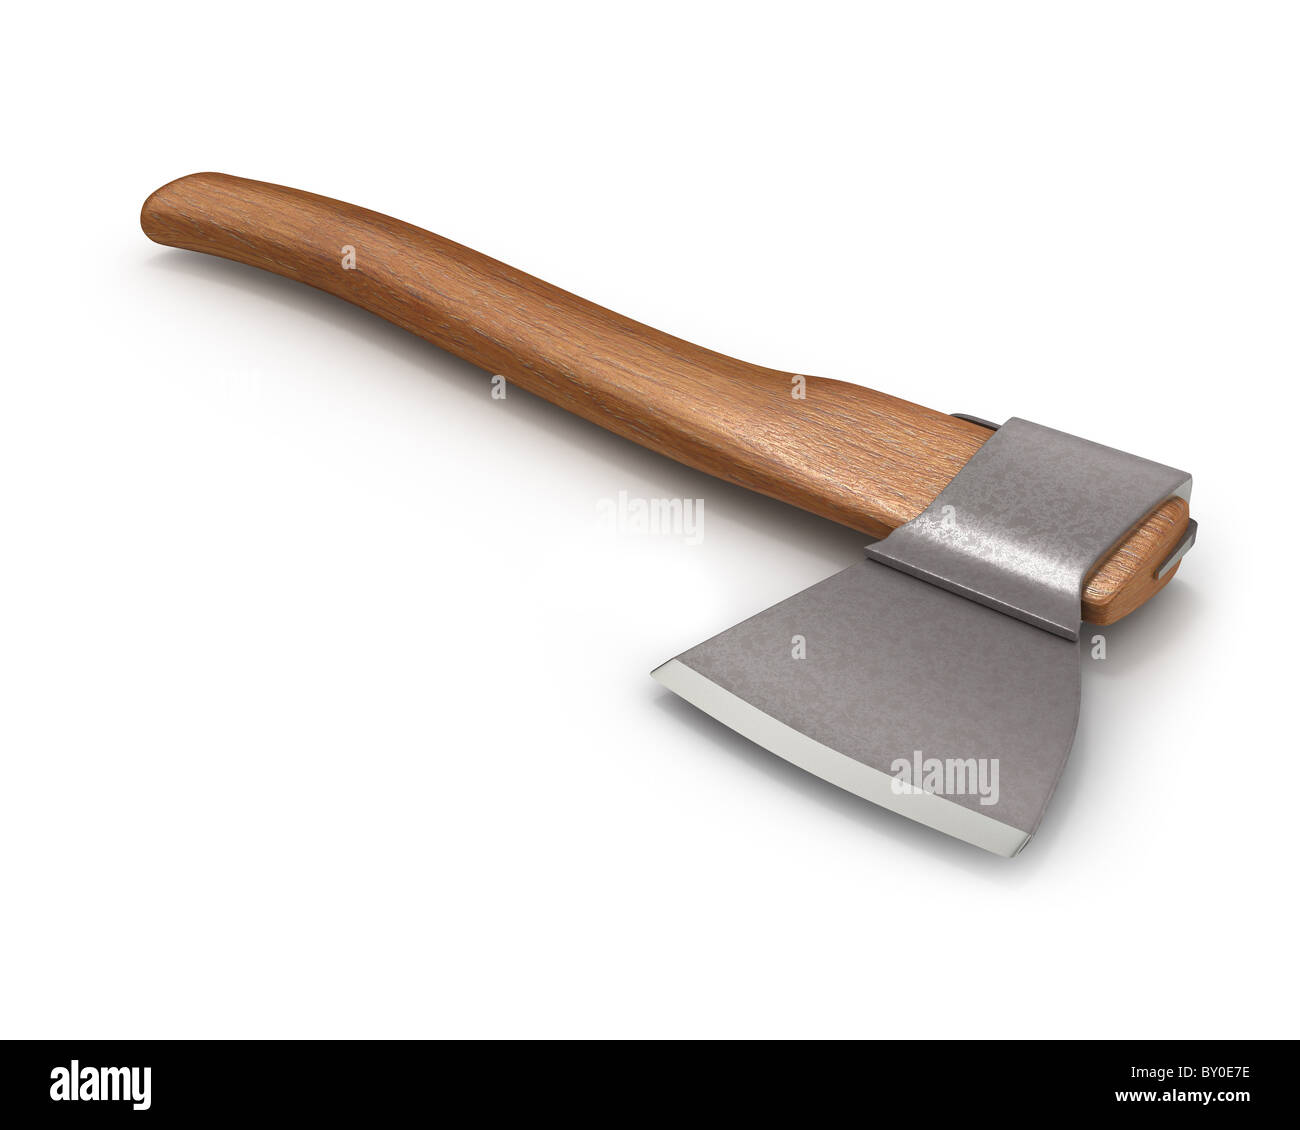 Felling Axe Stock Photos Amp Felling Axe Stock Images Alamy